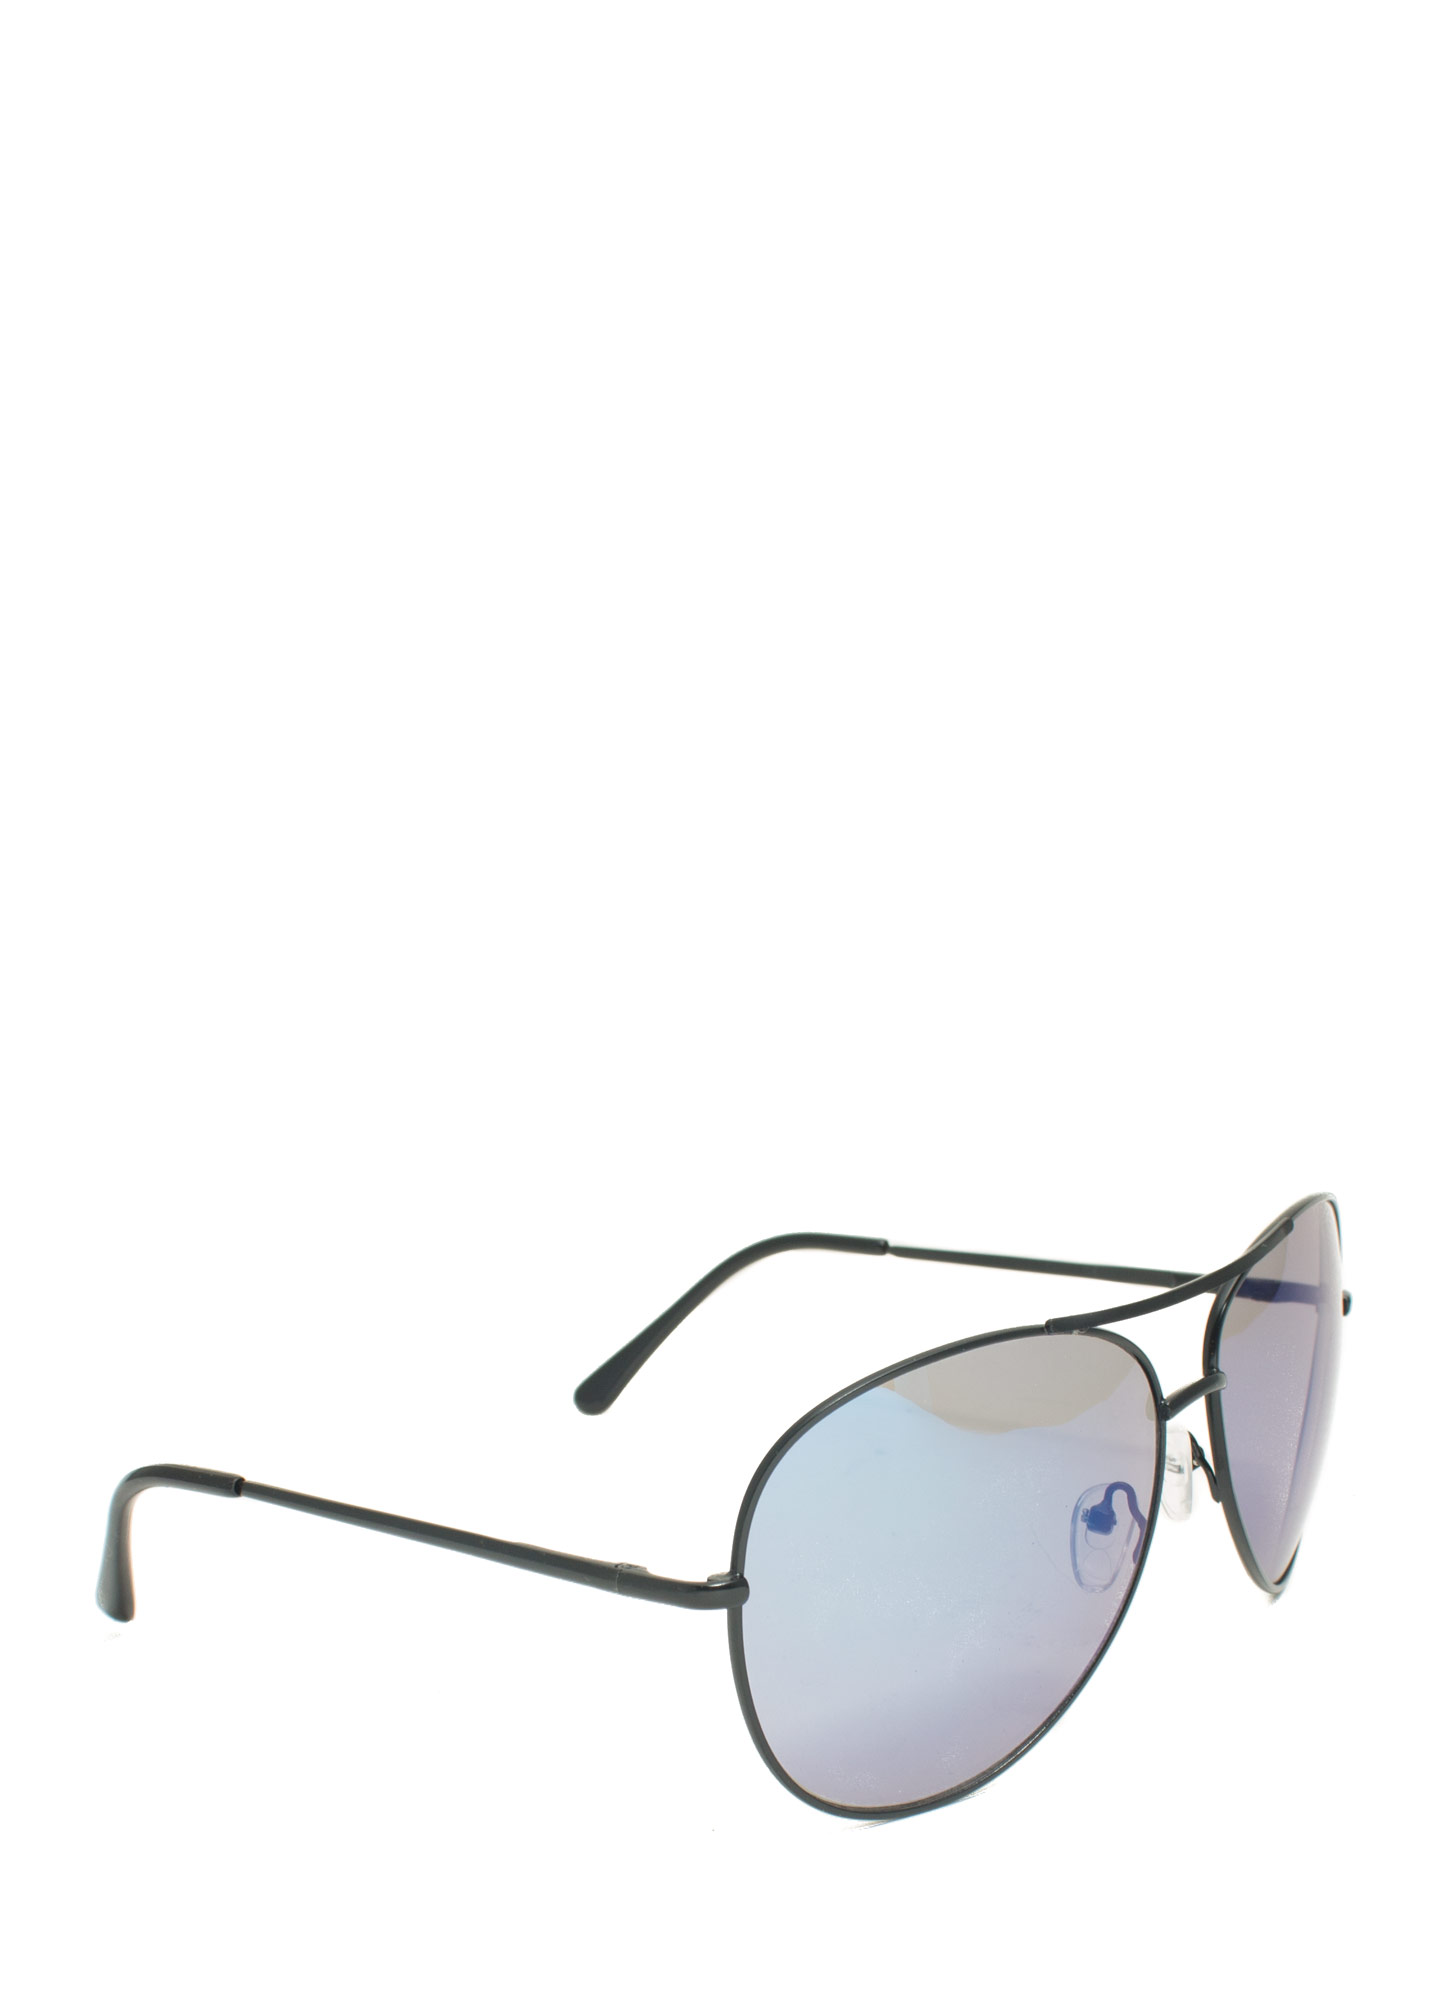 Holographic Projection Aviator Sunglasses BLUEMBLACK